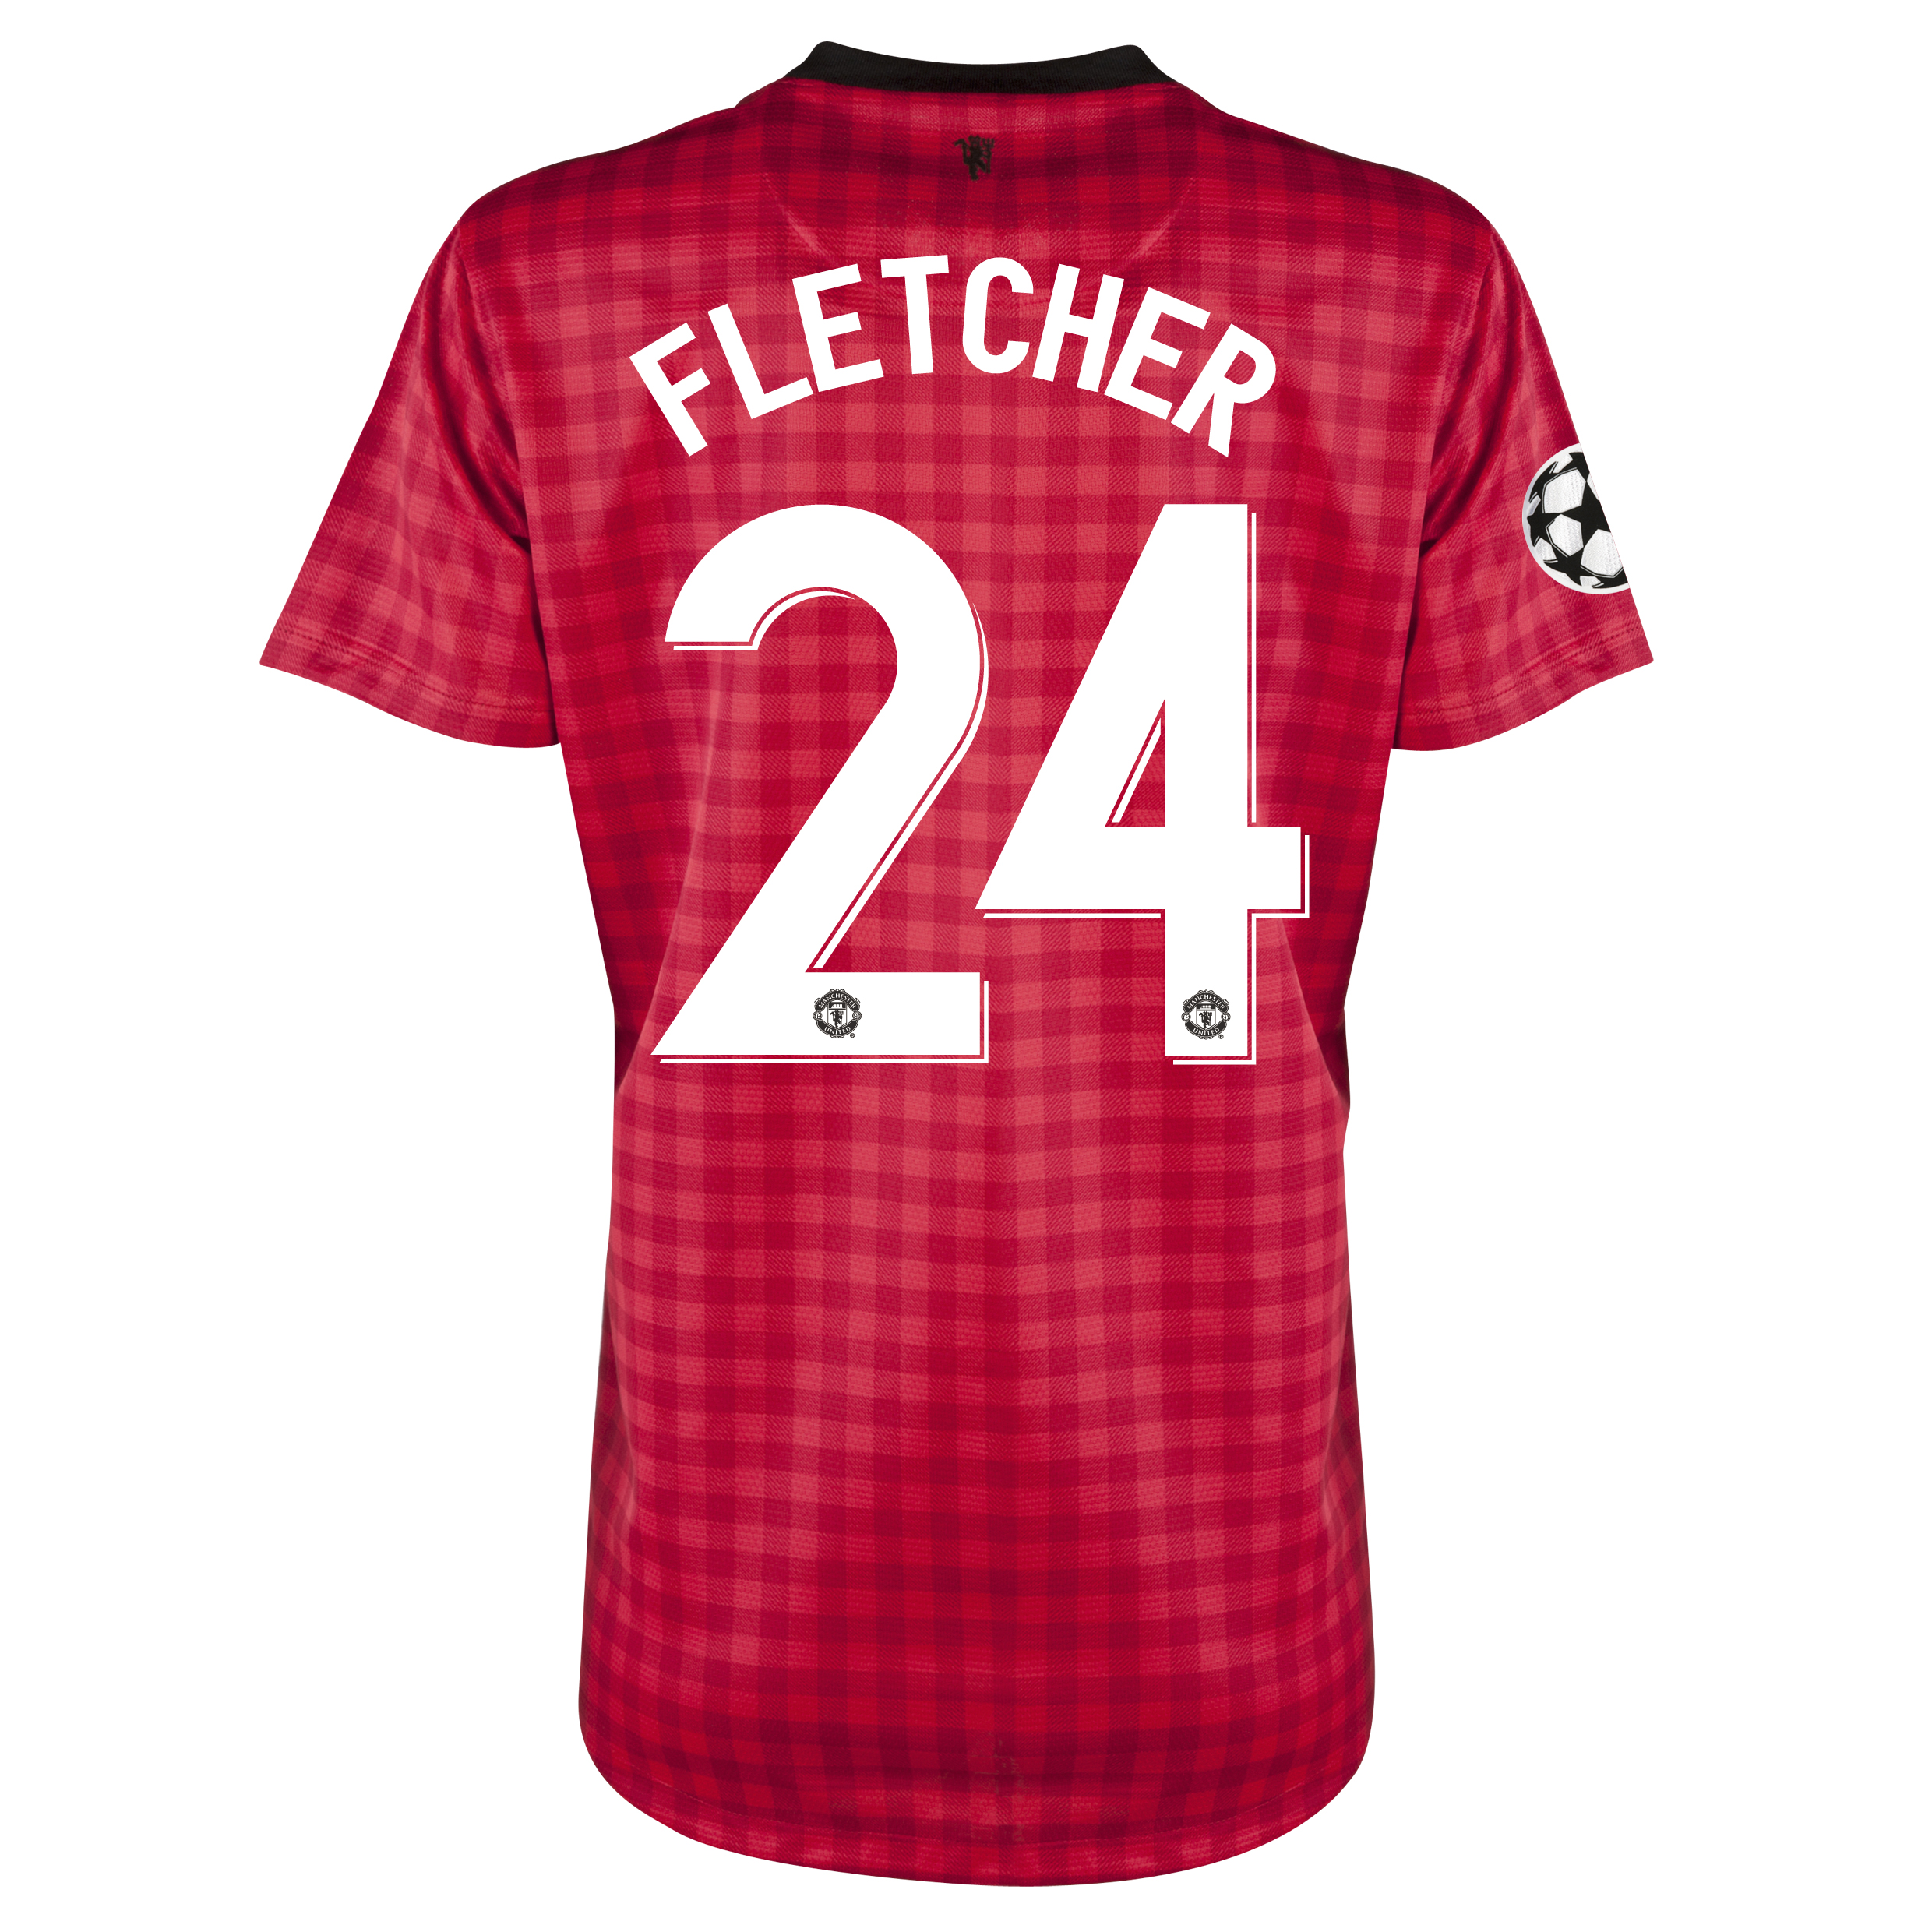 Man United UEFA Champions League Home Shirt 2012/13 - Womens with Fletcher 24 printing